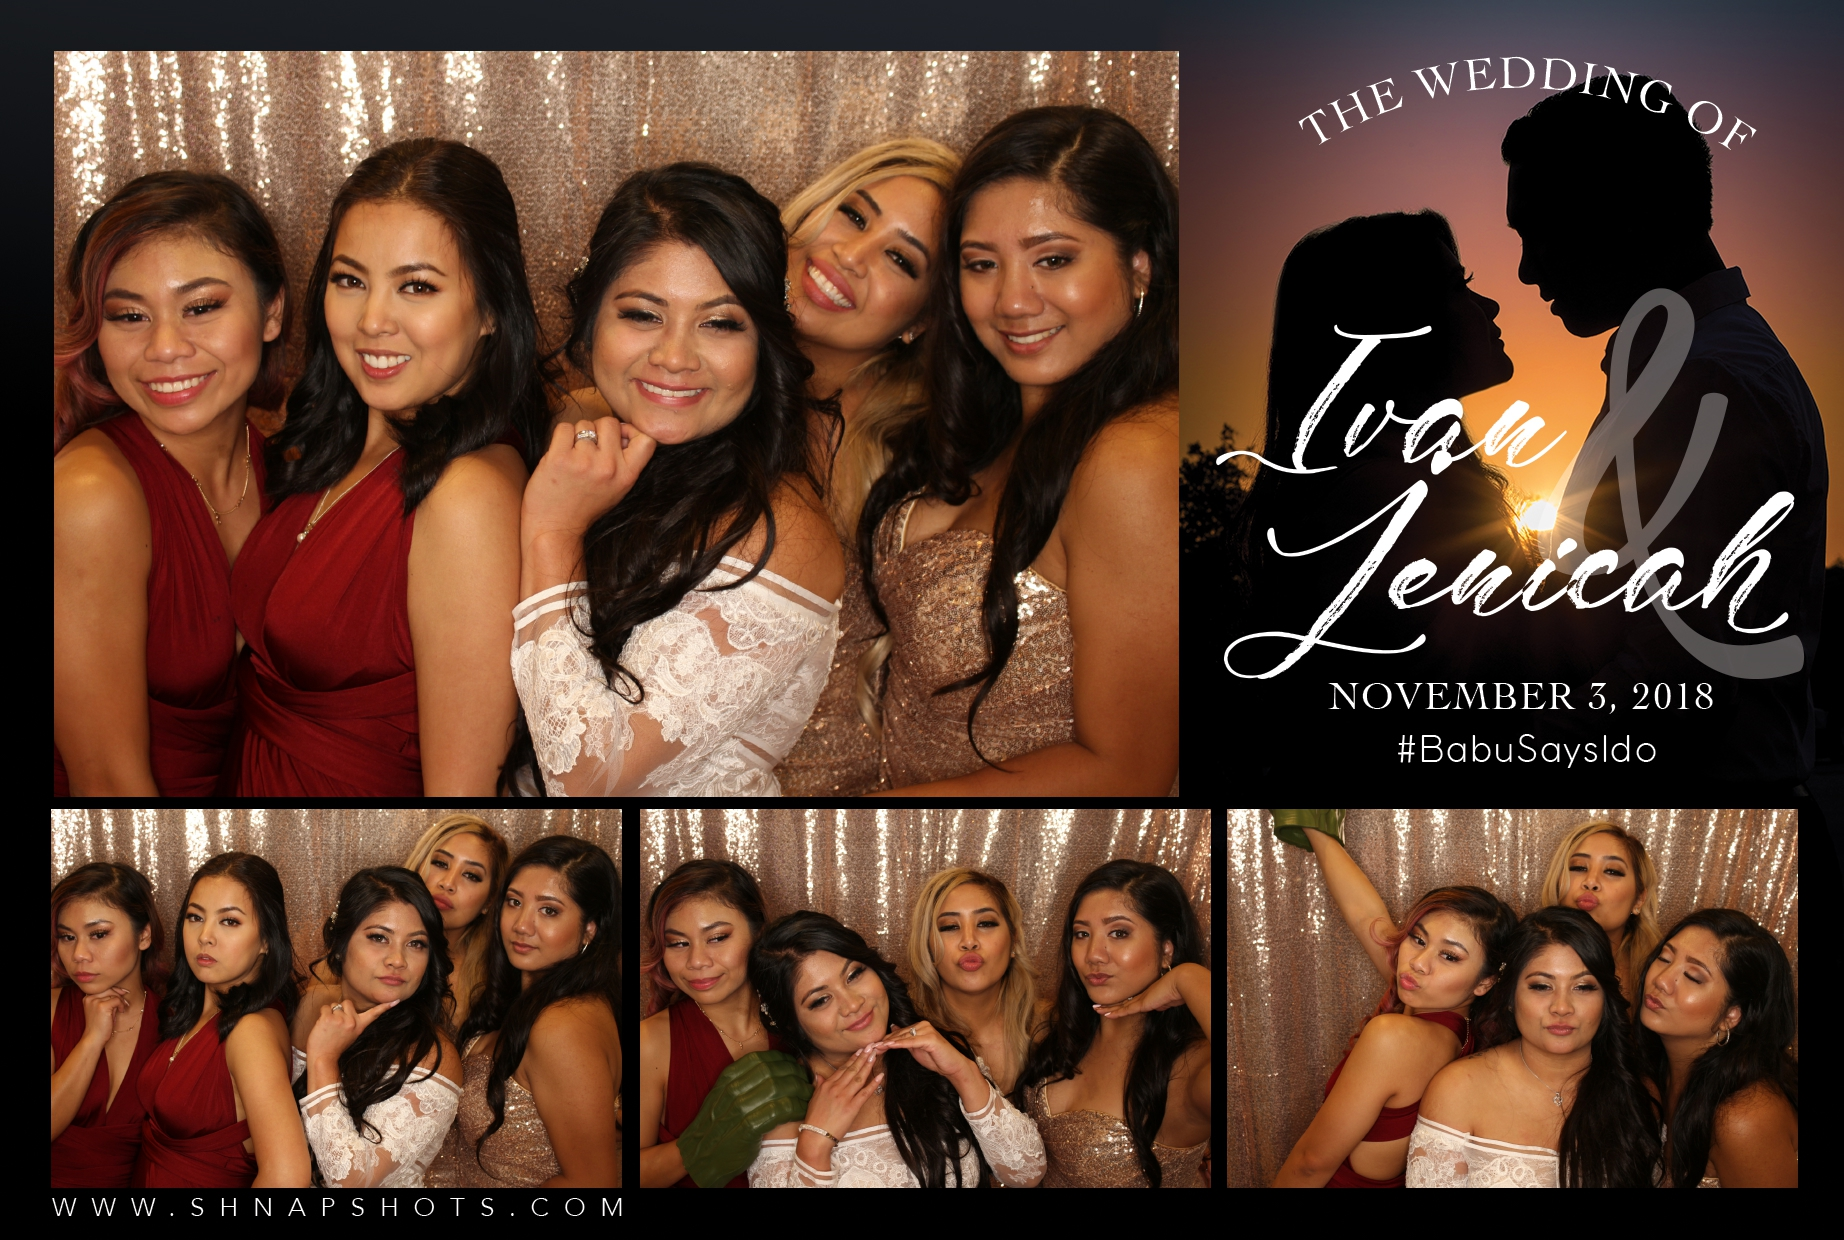 Ivan & Jenicah Wedding